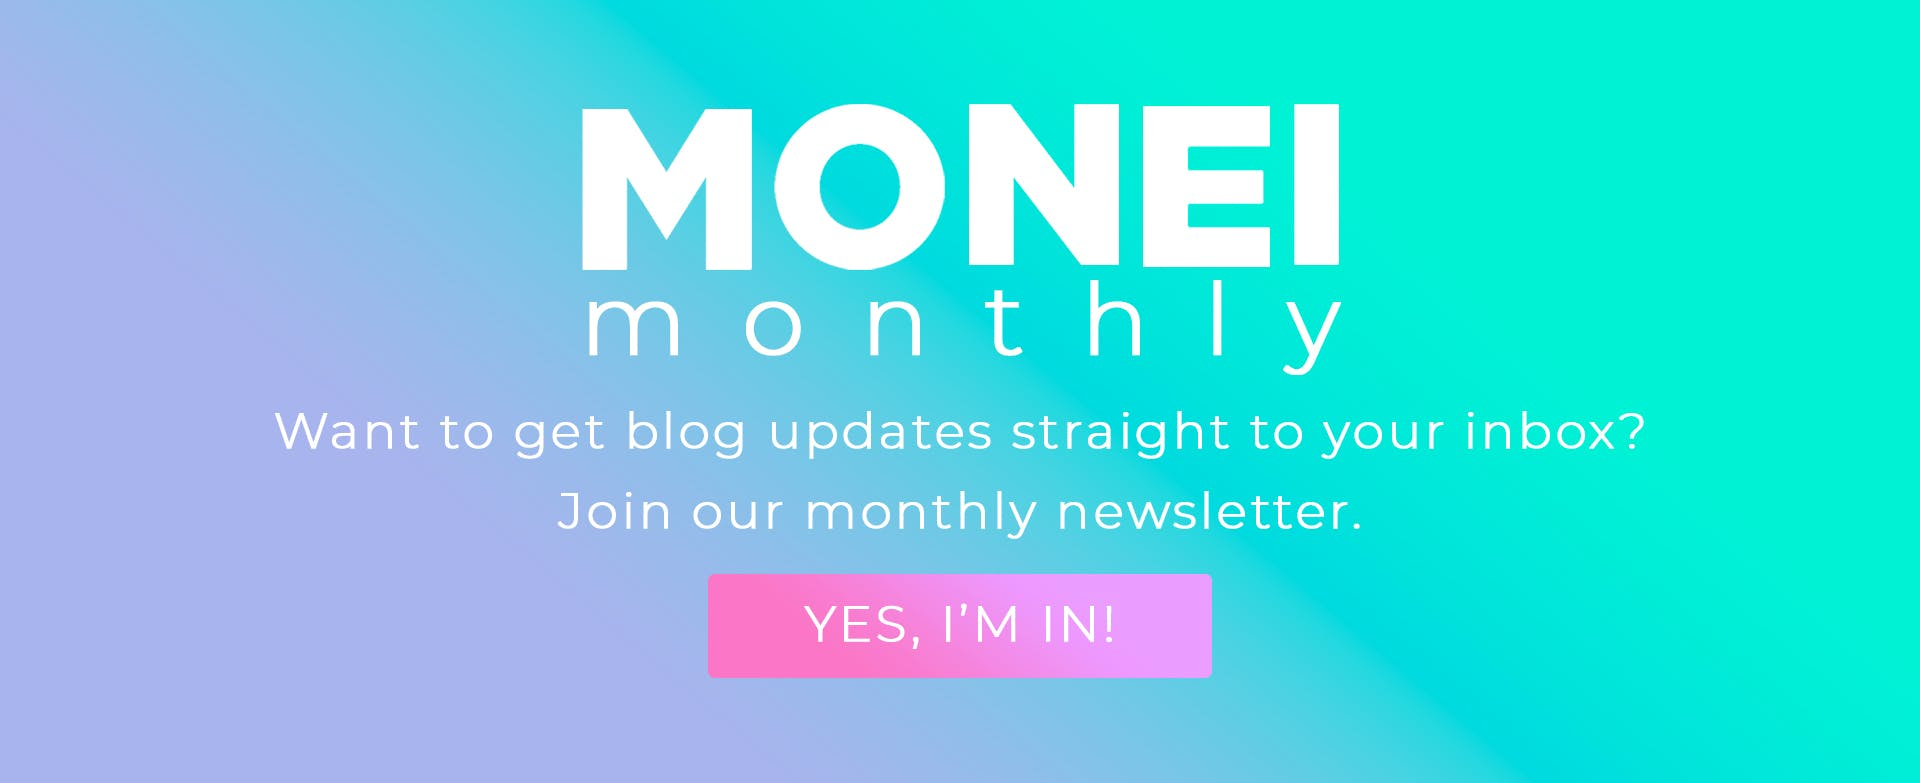 MONEI monthly newsletter